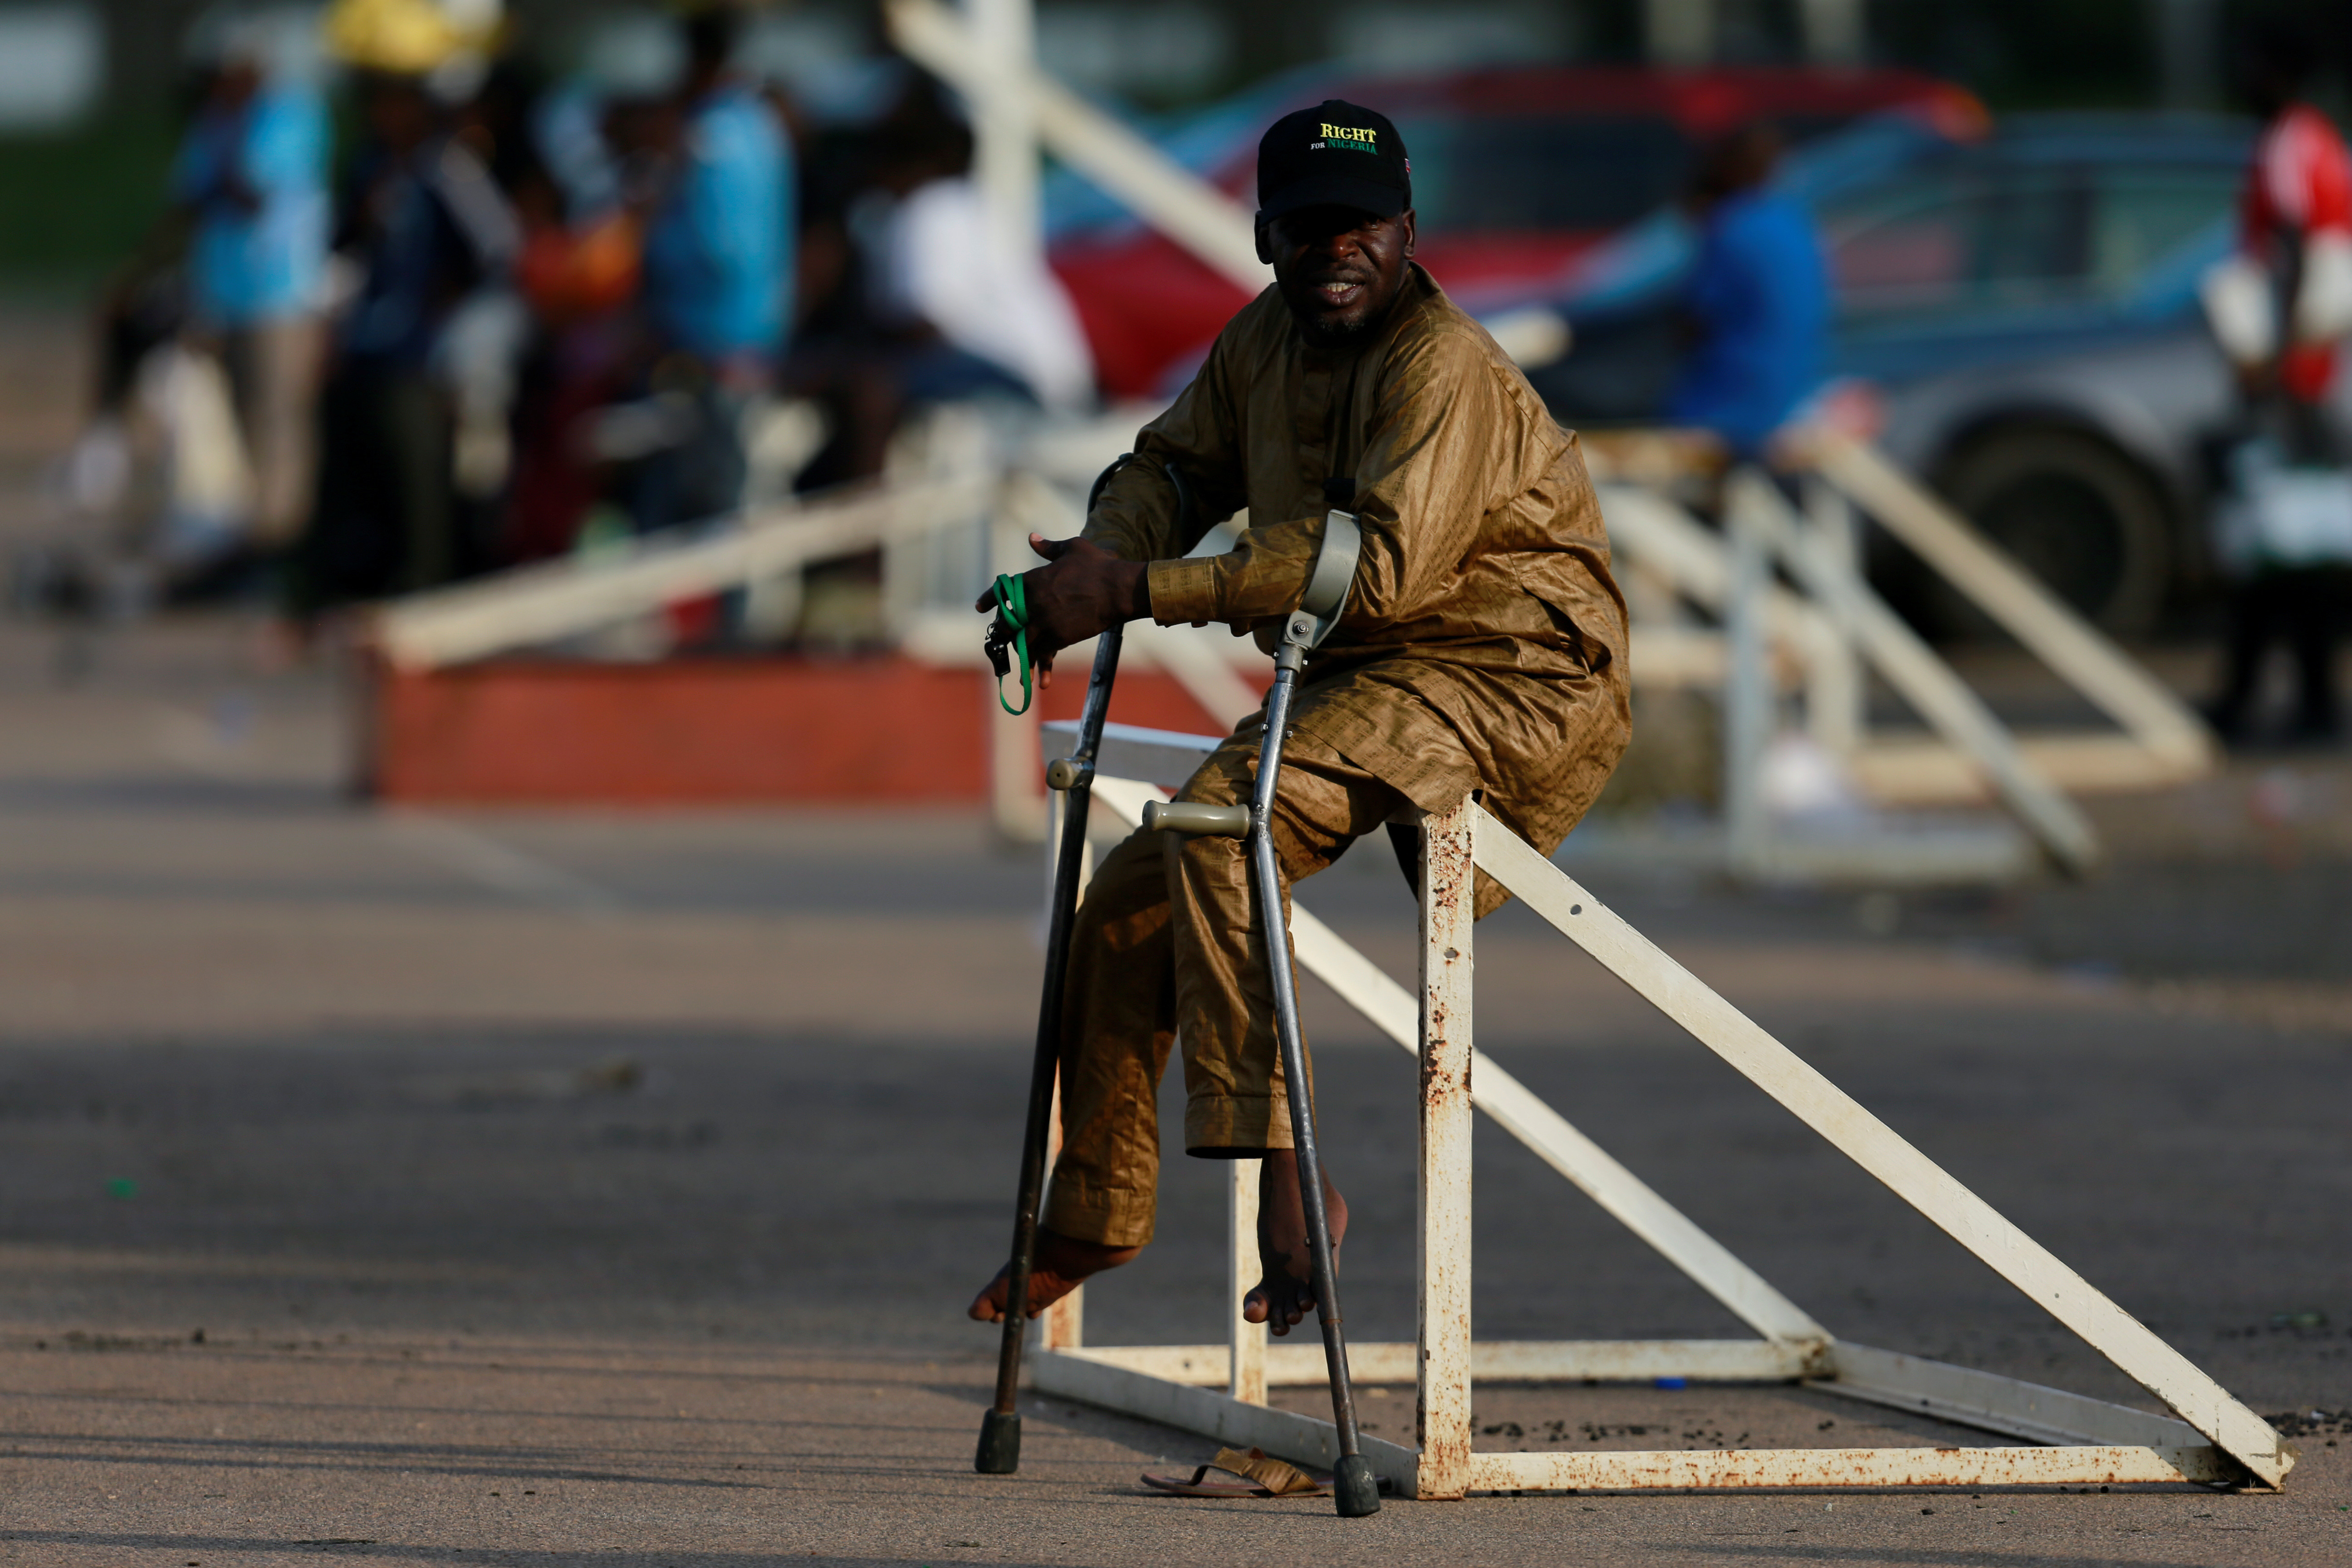 A victim of polio disease sits on a goal pole during a game of para-soccer in Abuja, Nigeria  August 22, 2020. Picture taken August 22, 2020. REUTERS/Afolabi Sotunde - RC2XKI9JC77H